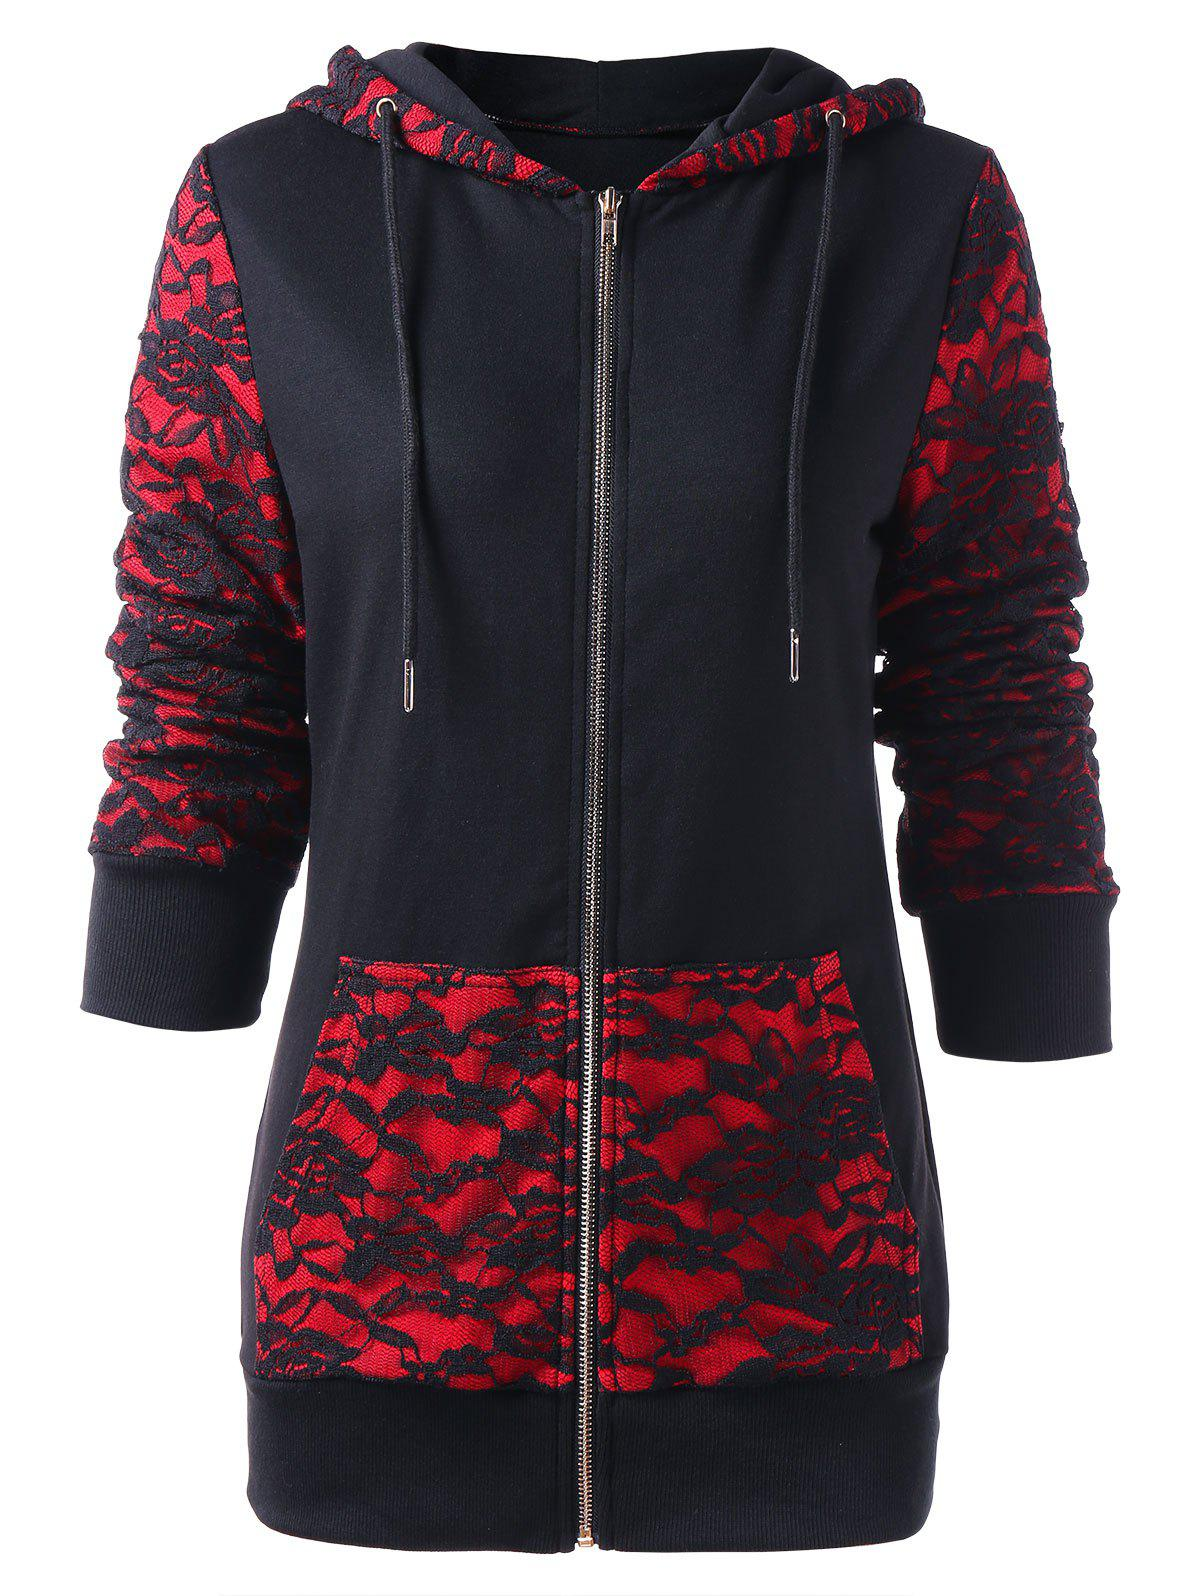 Fancy Roses Lace Insert Zip Up Hoodie